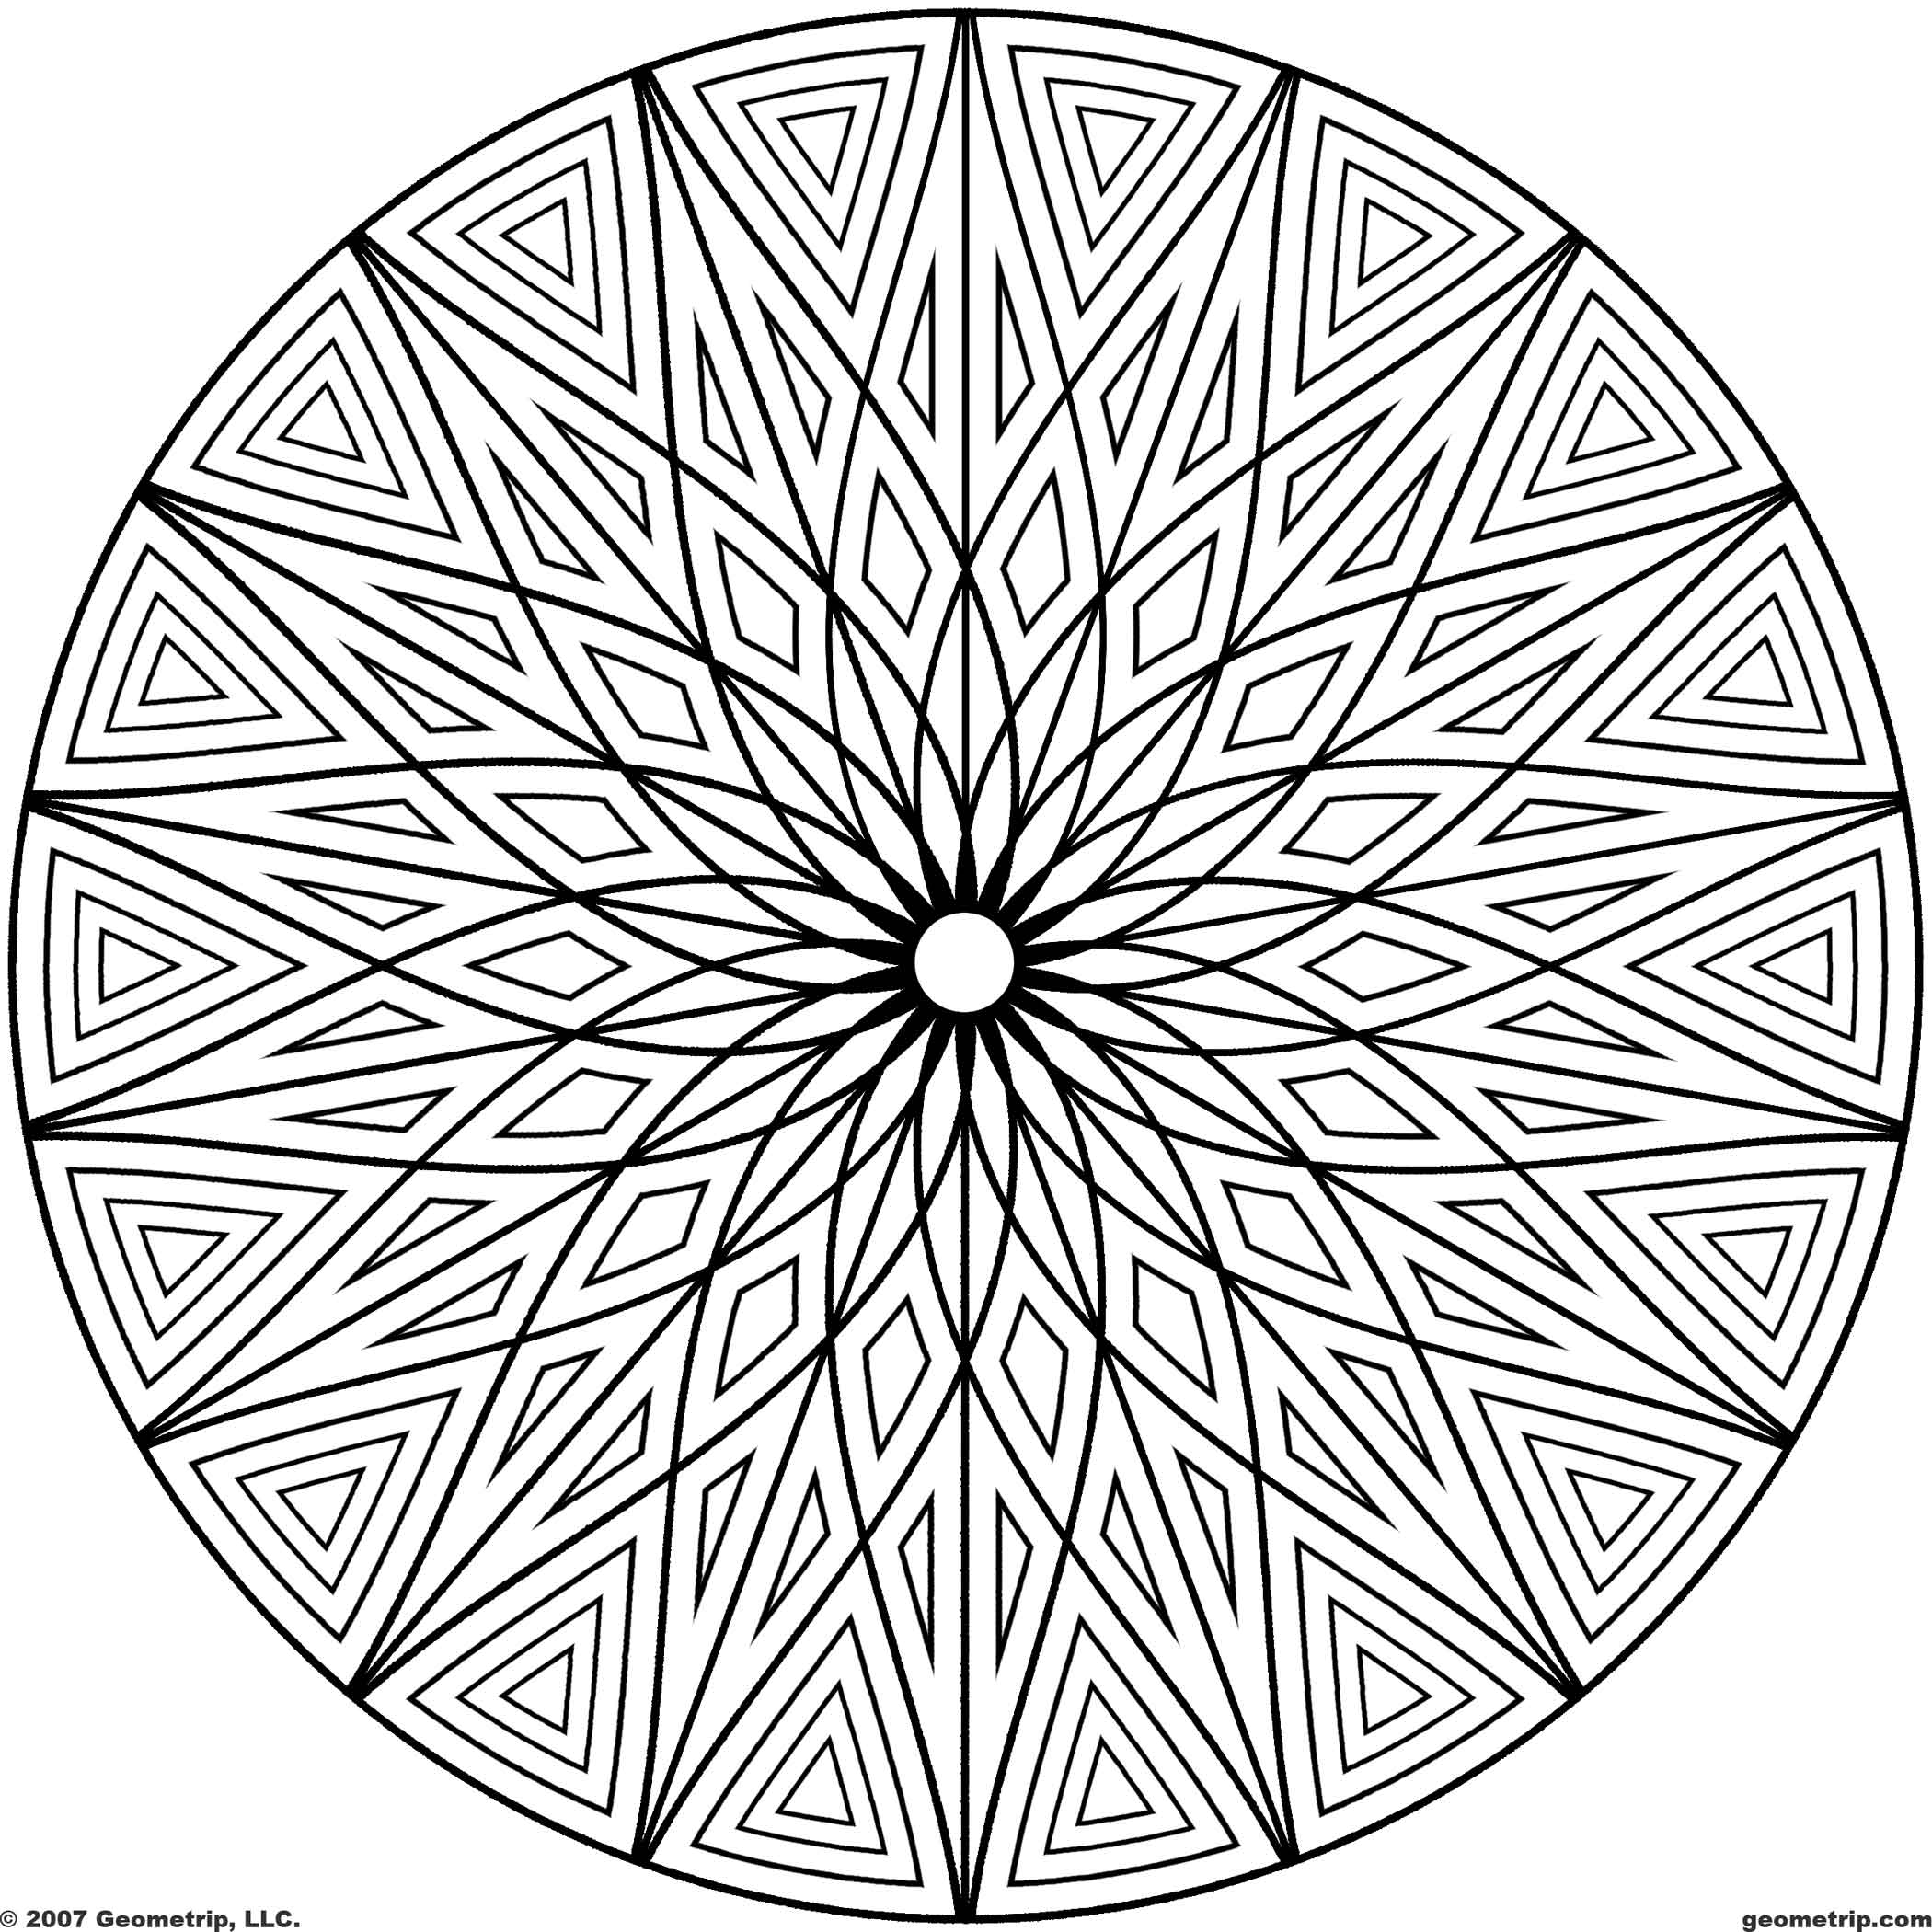 coloring pages designs 25 coloring pages including mandalas geometric designs rug pages designs coloring